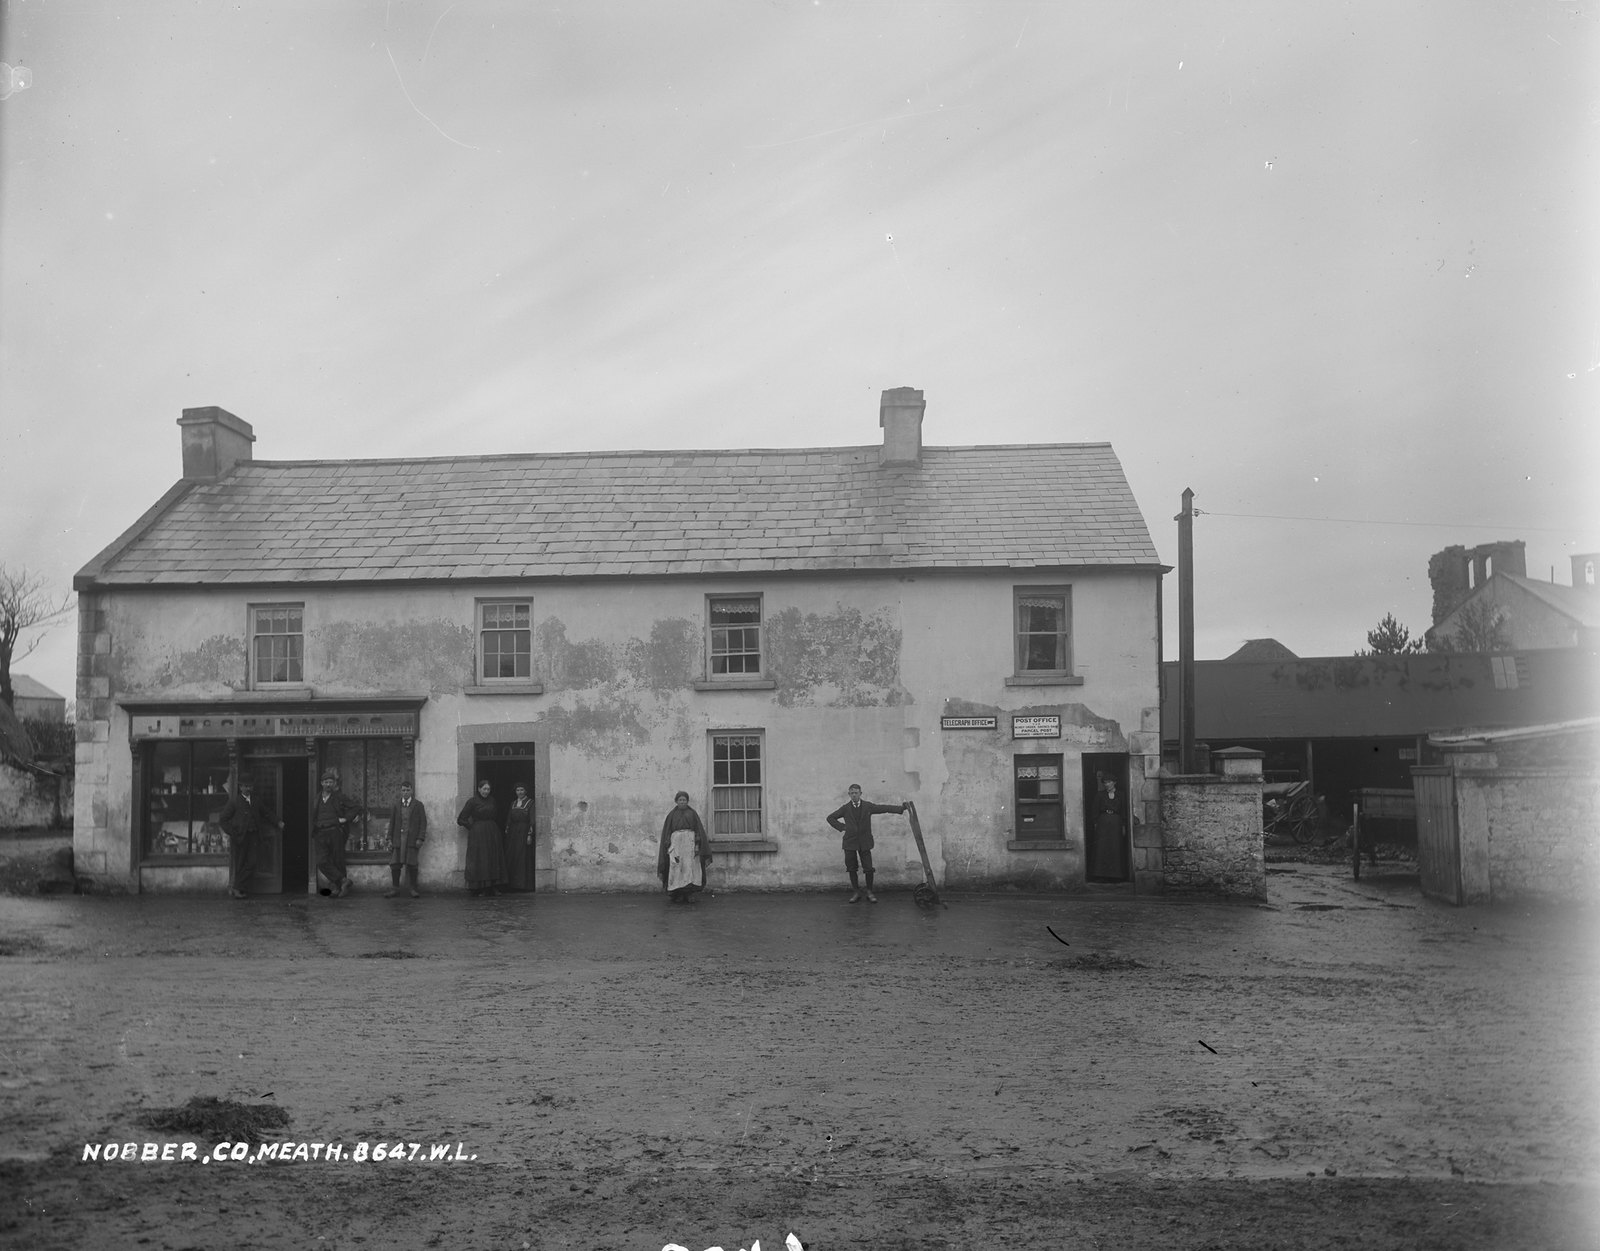 McGuinness's Shop, Nobber, Co. Meath | by National Library of Ireland on The Commons